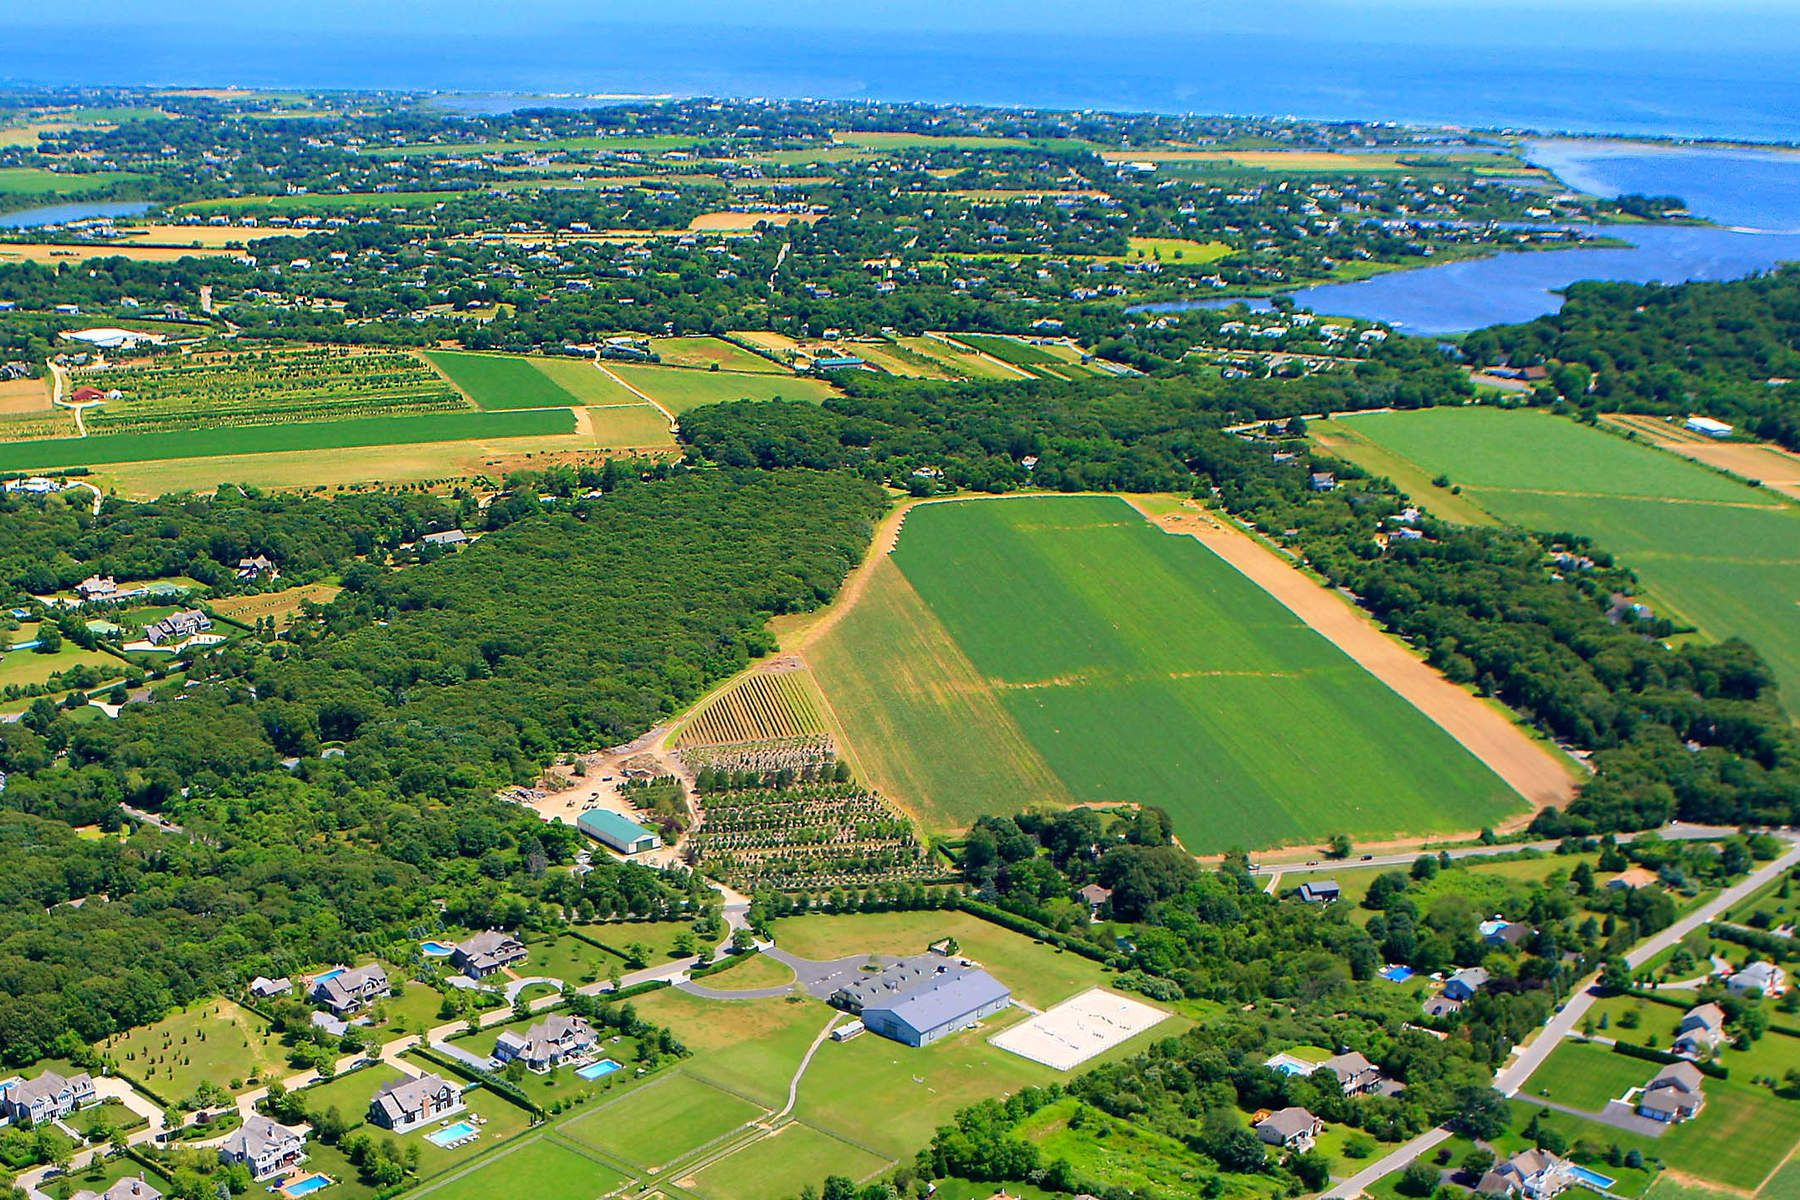 Land for Sale at Water Mill Twenty One Acre Reserve 60 Scuttle Hole Road, Bridgehampton, New York, 11932 United States